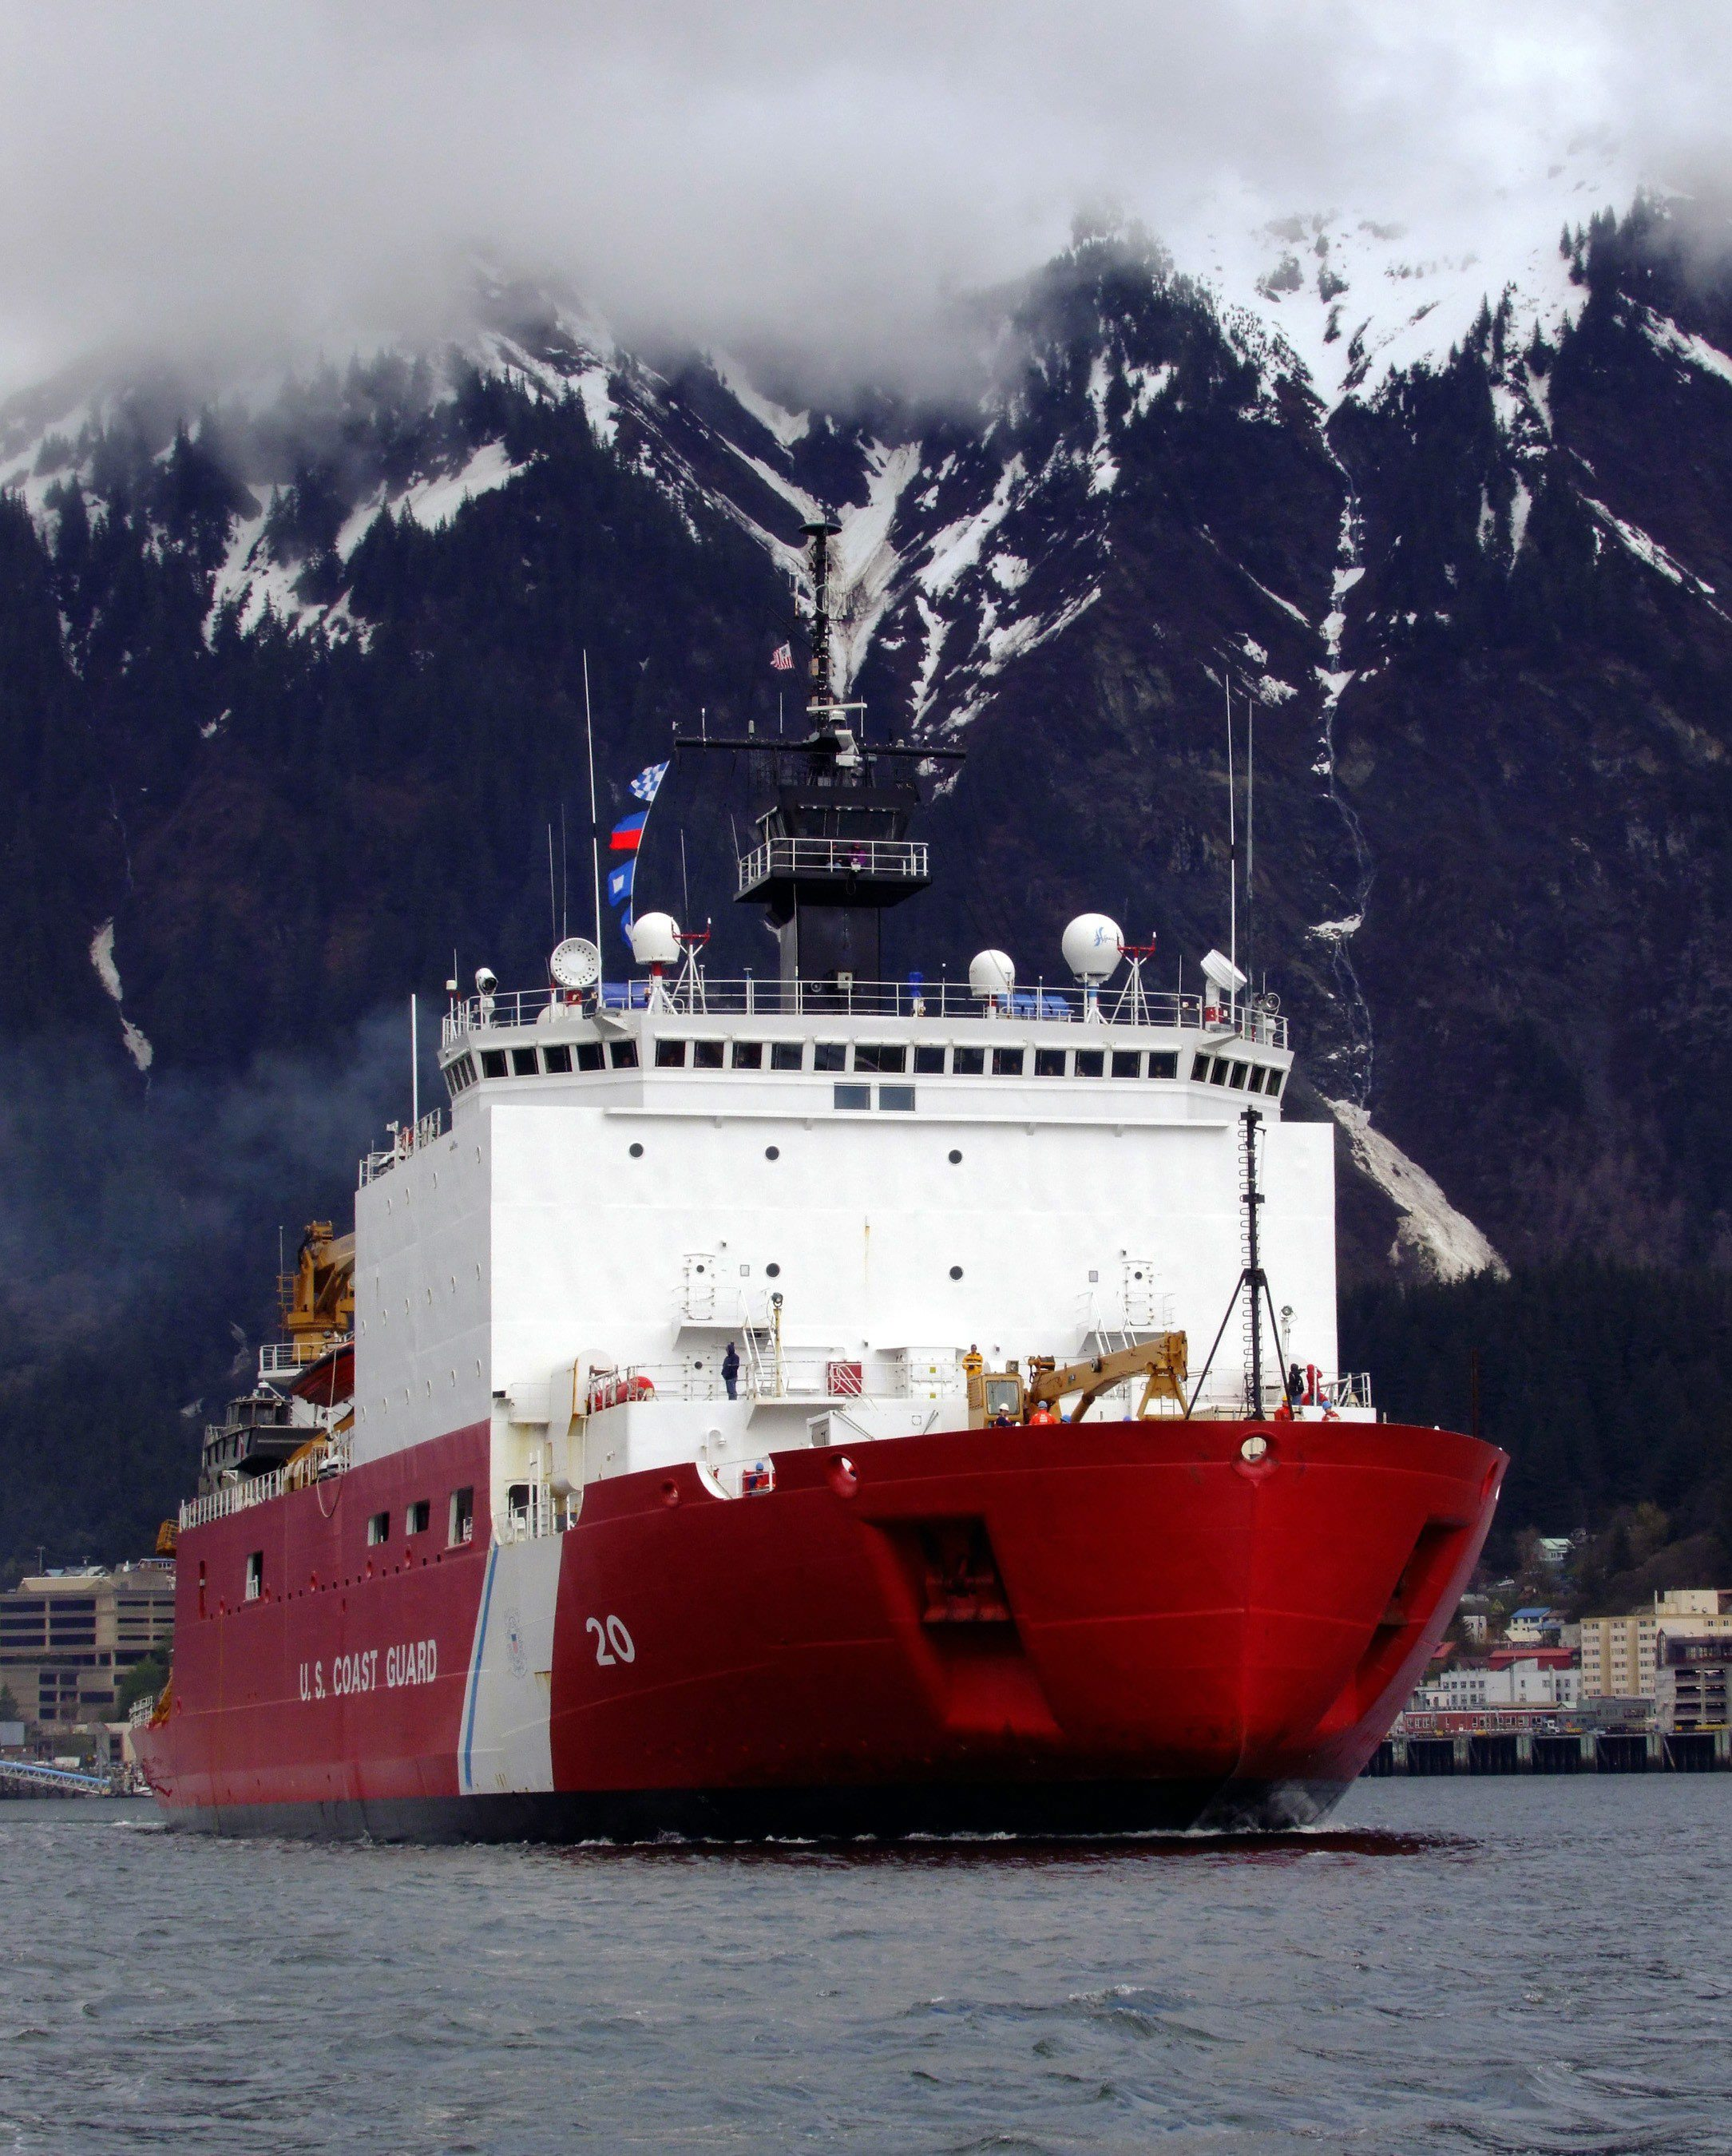 The U.S. Coast Guard Cutter Healy in Alaska in 2008. (AP)